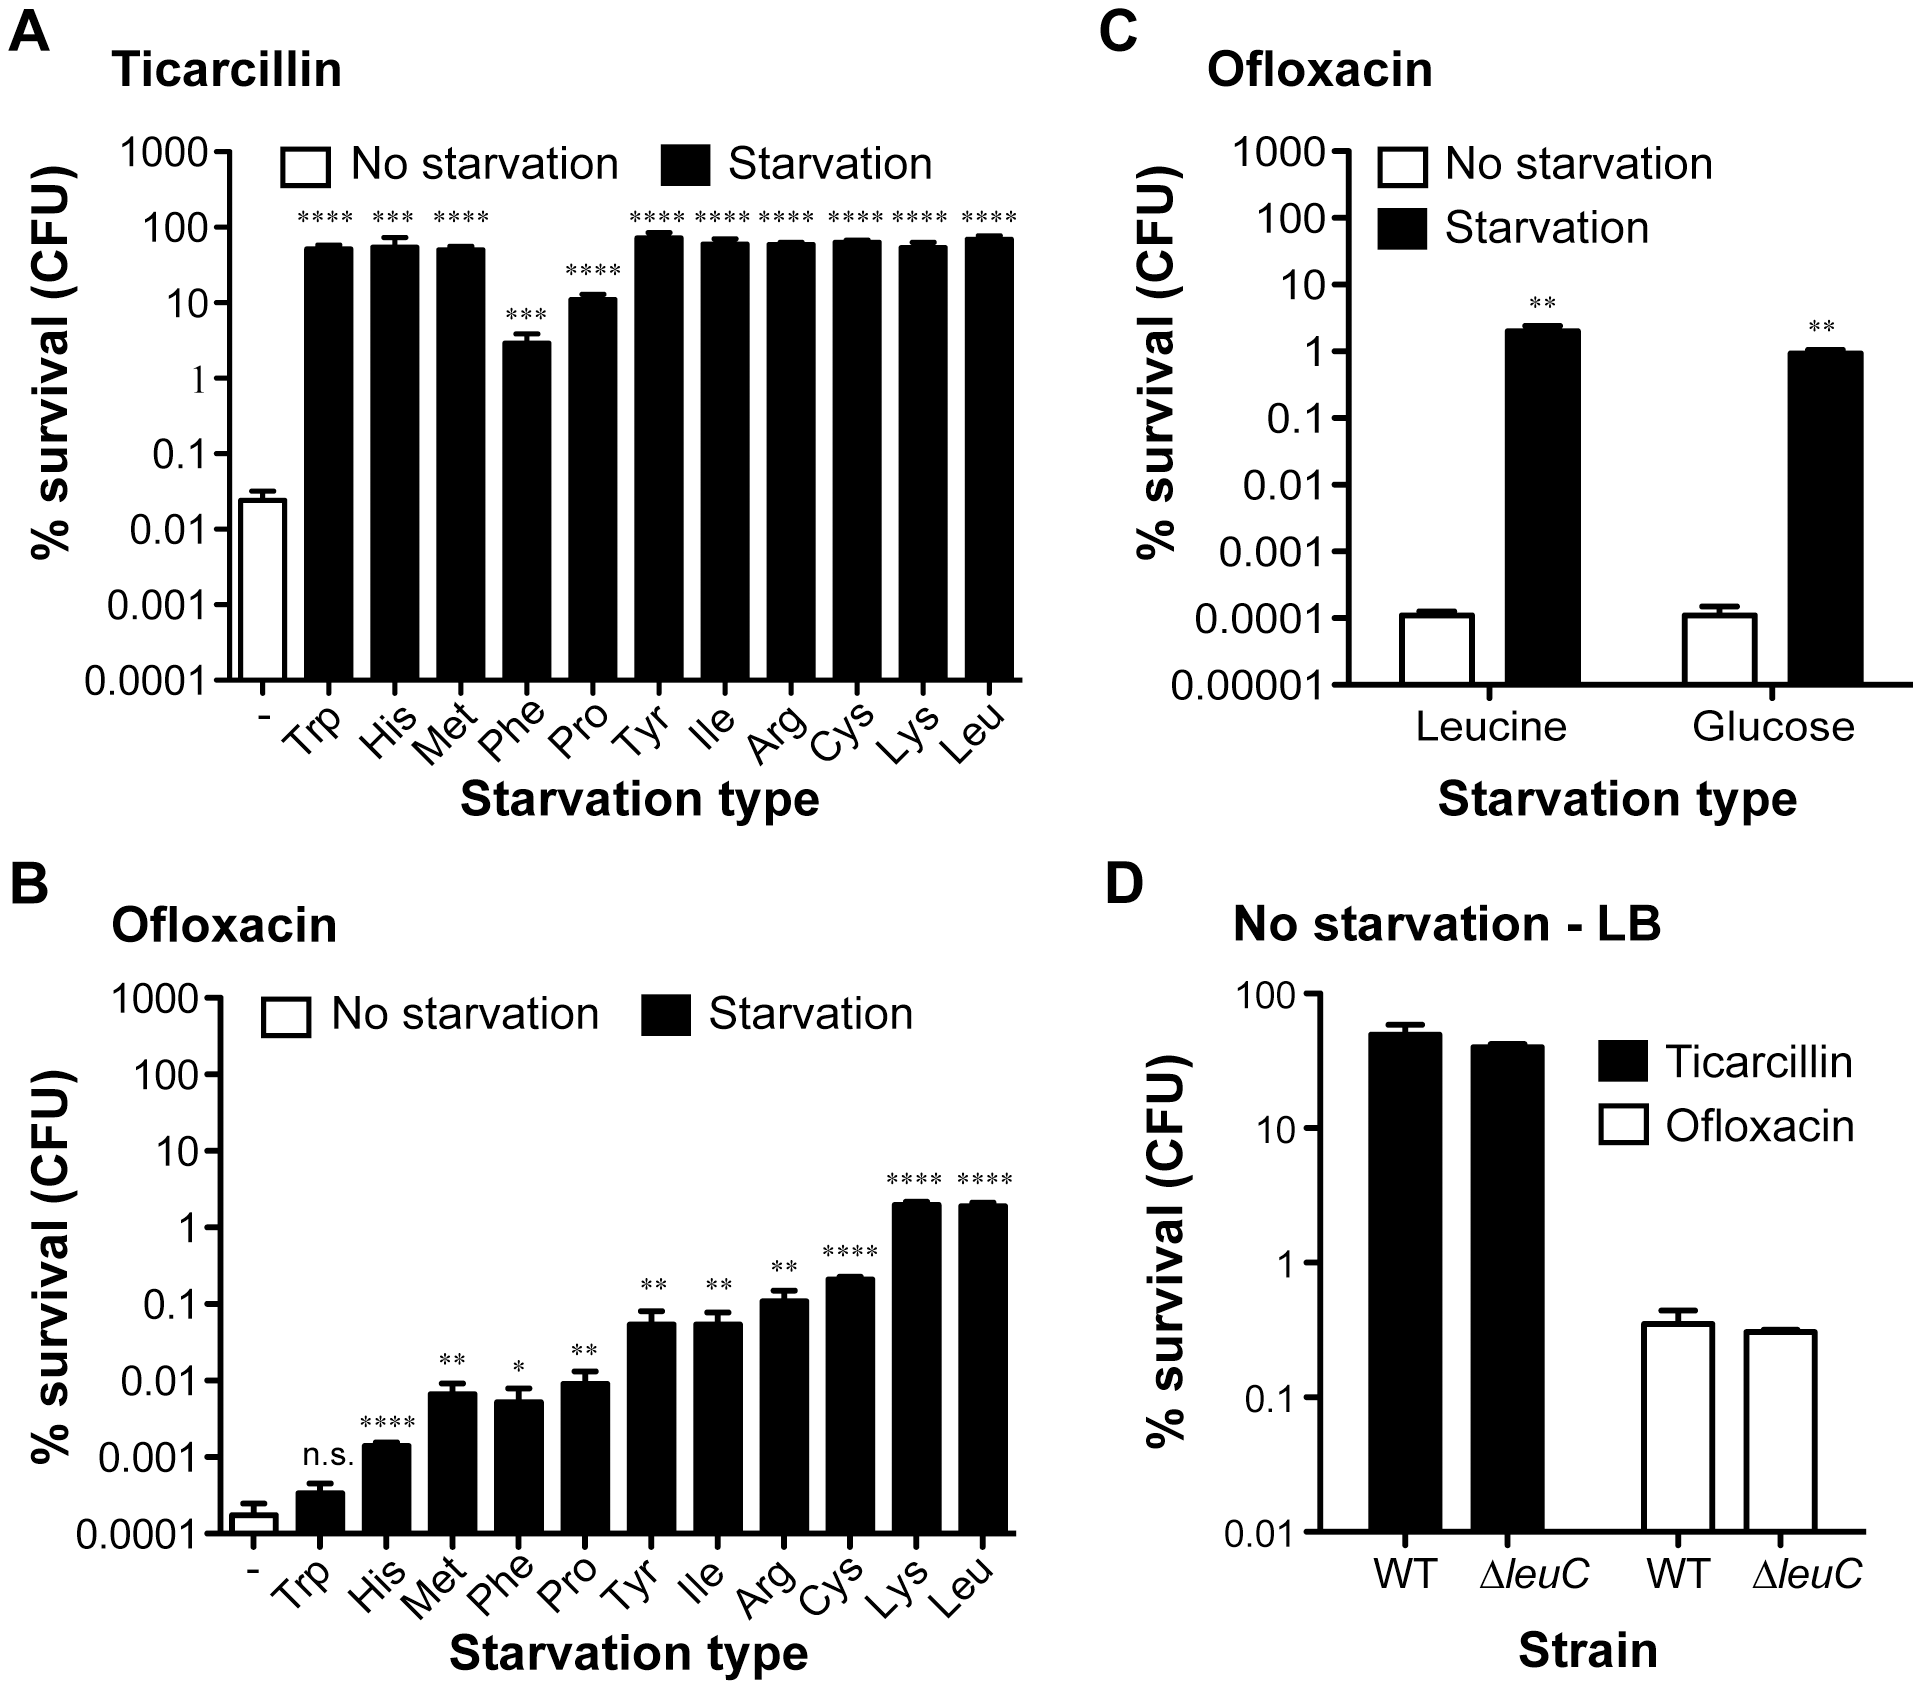 Starvation leads to high antibiotic tolerance in biofilms of <i>E. coli</i> TG1.